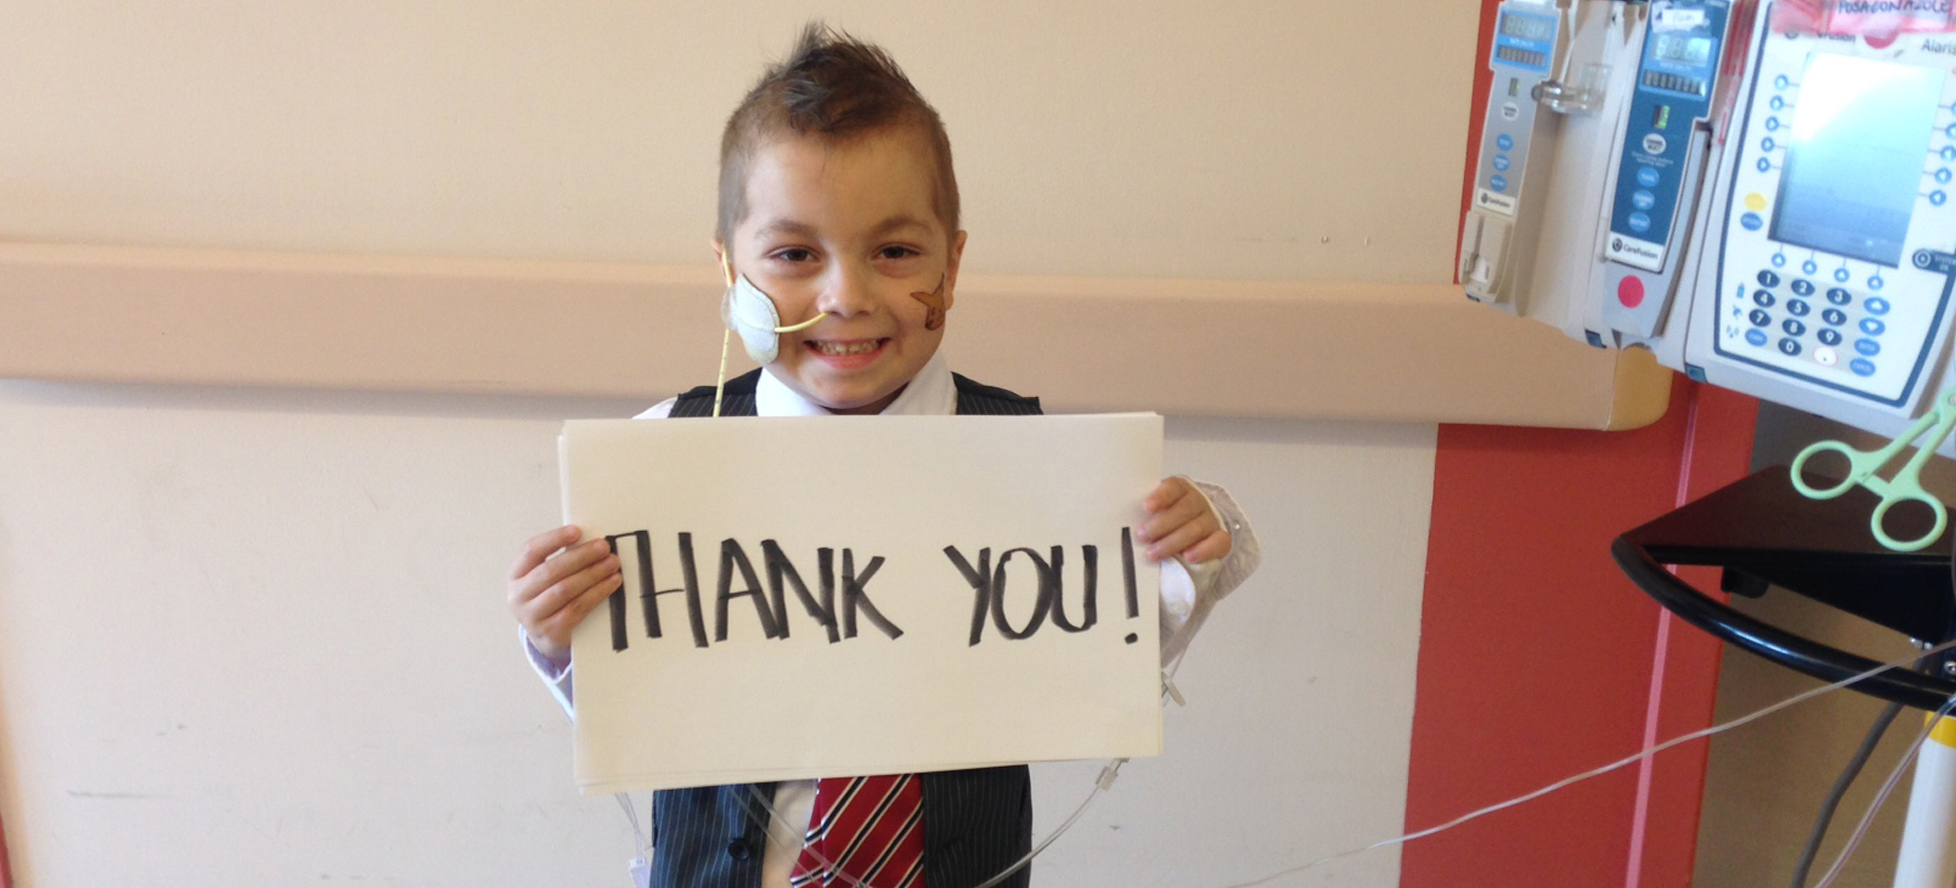 Little boy with IV pole holding up thank you sign